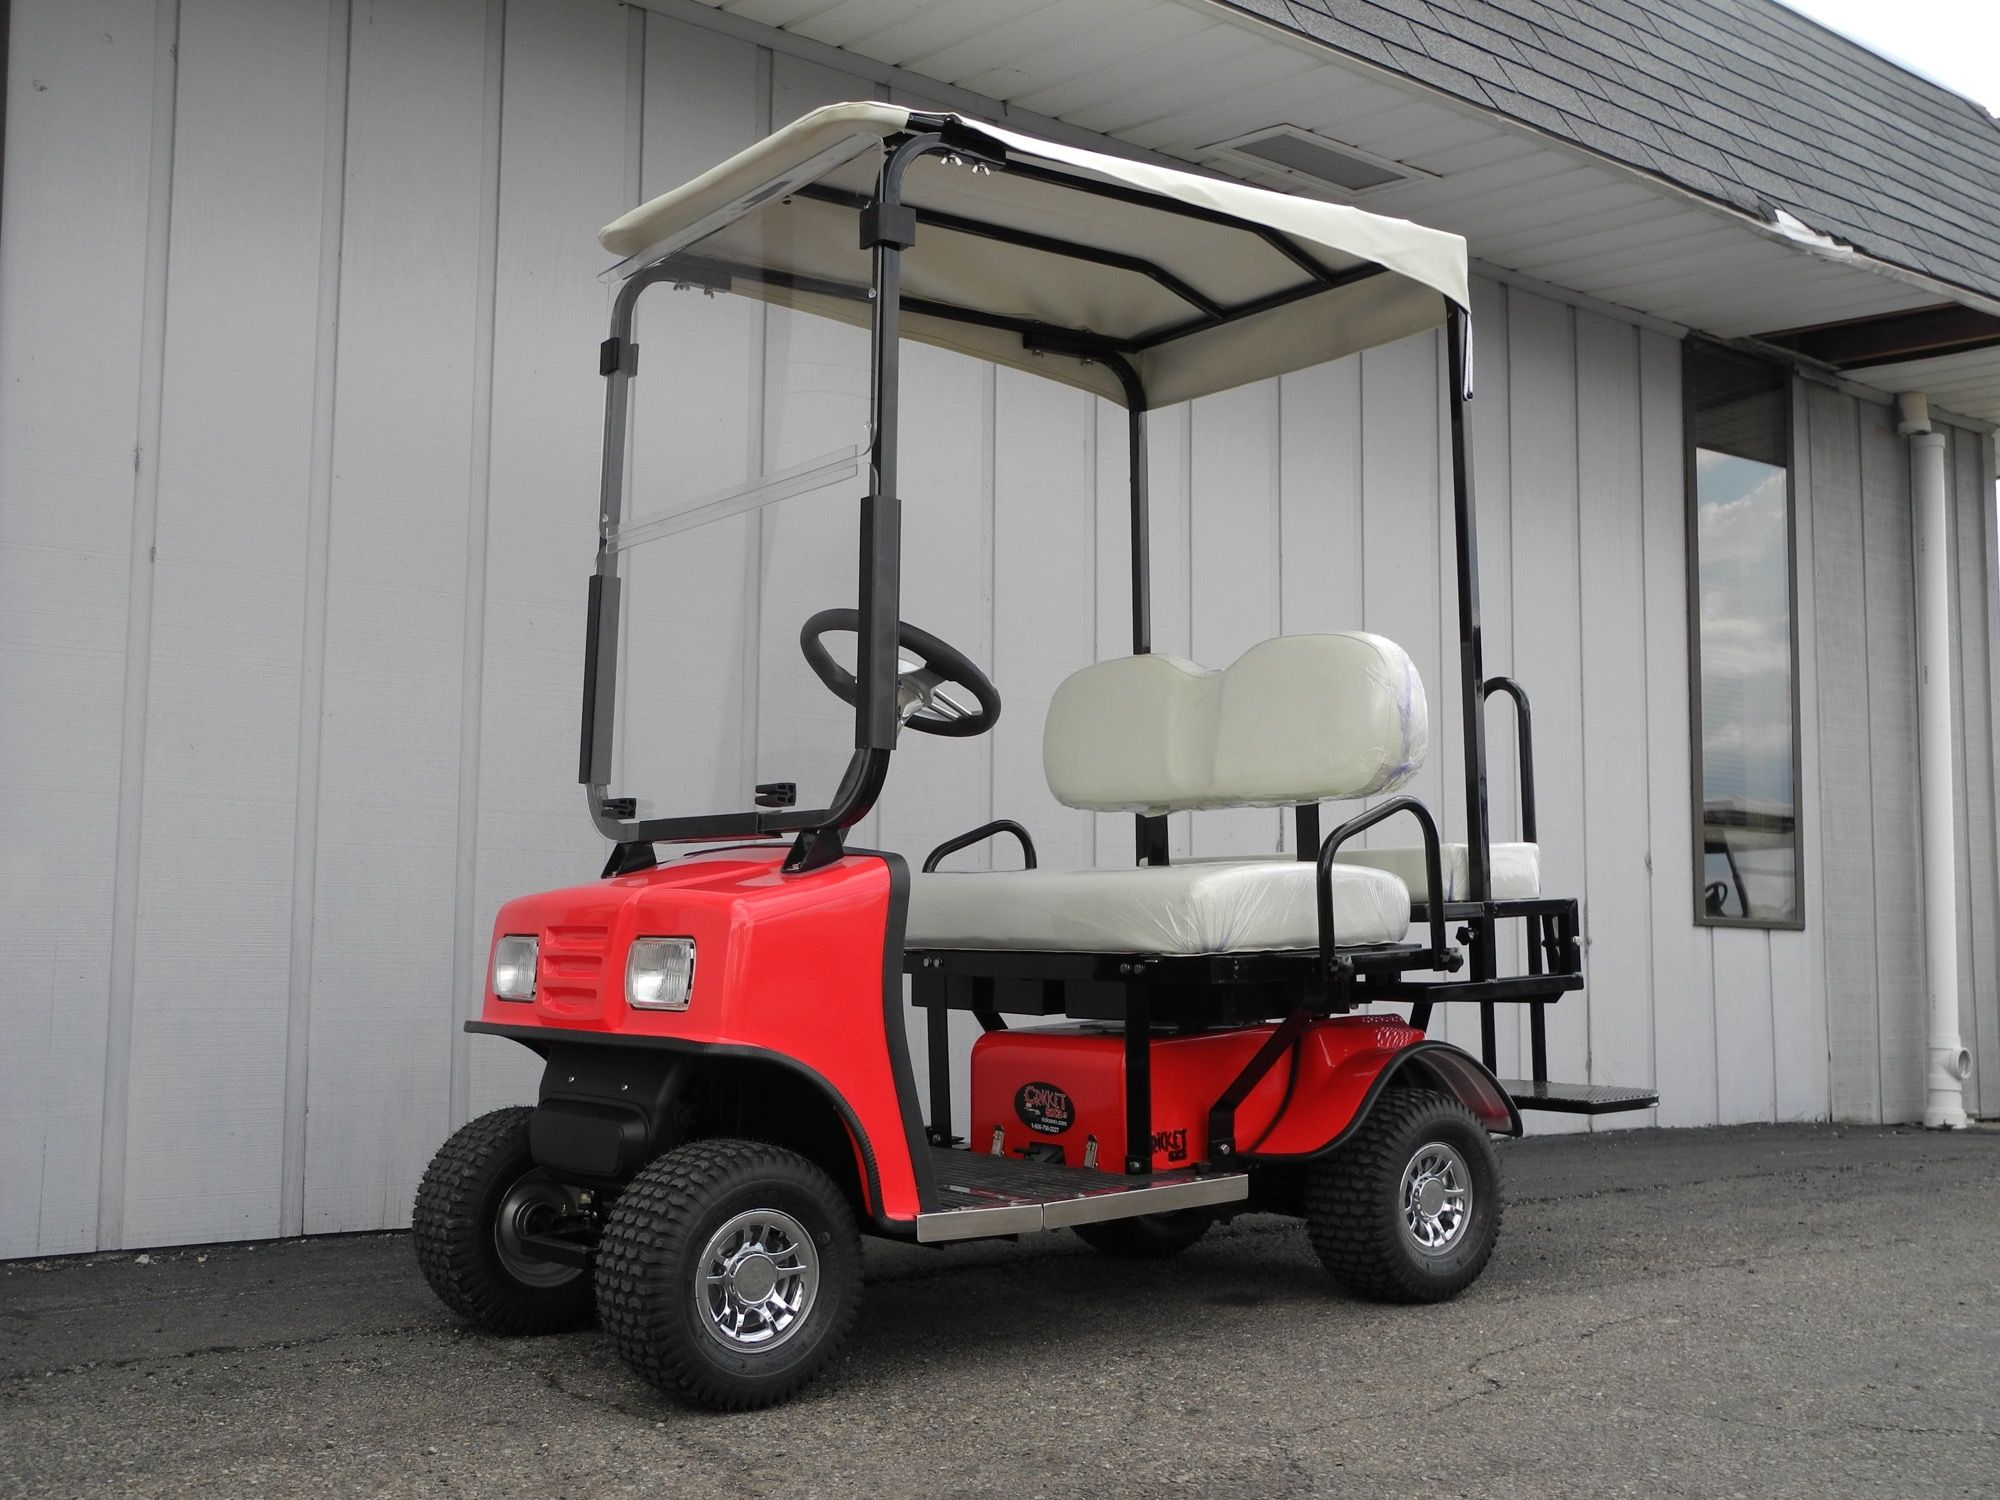 We Just Got A New Shipment Of Rick S Specialty Vehicles Cricket Sx3 Personal Electric Sport Mobility In This Week Including Fire Engine